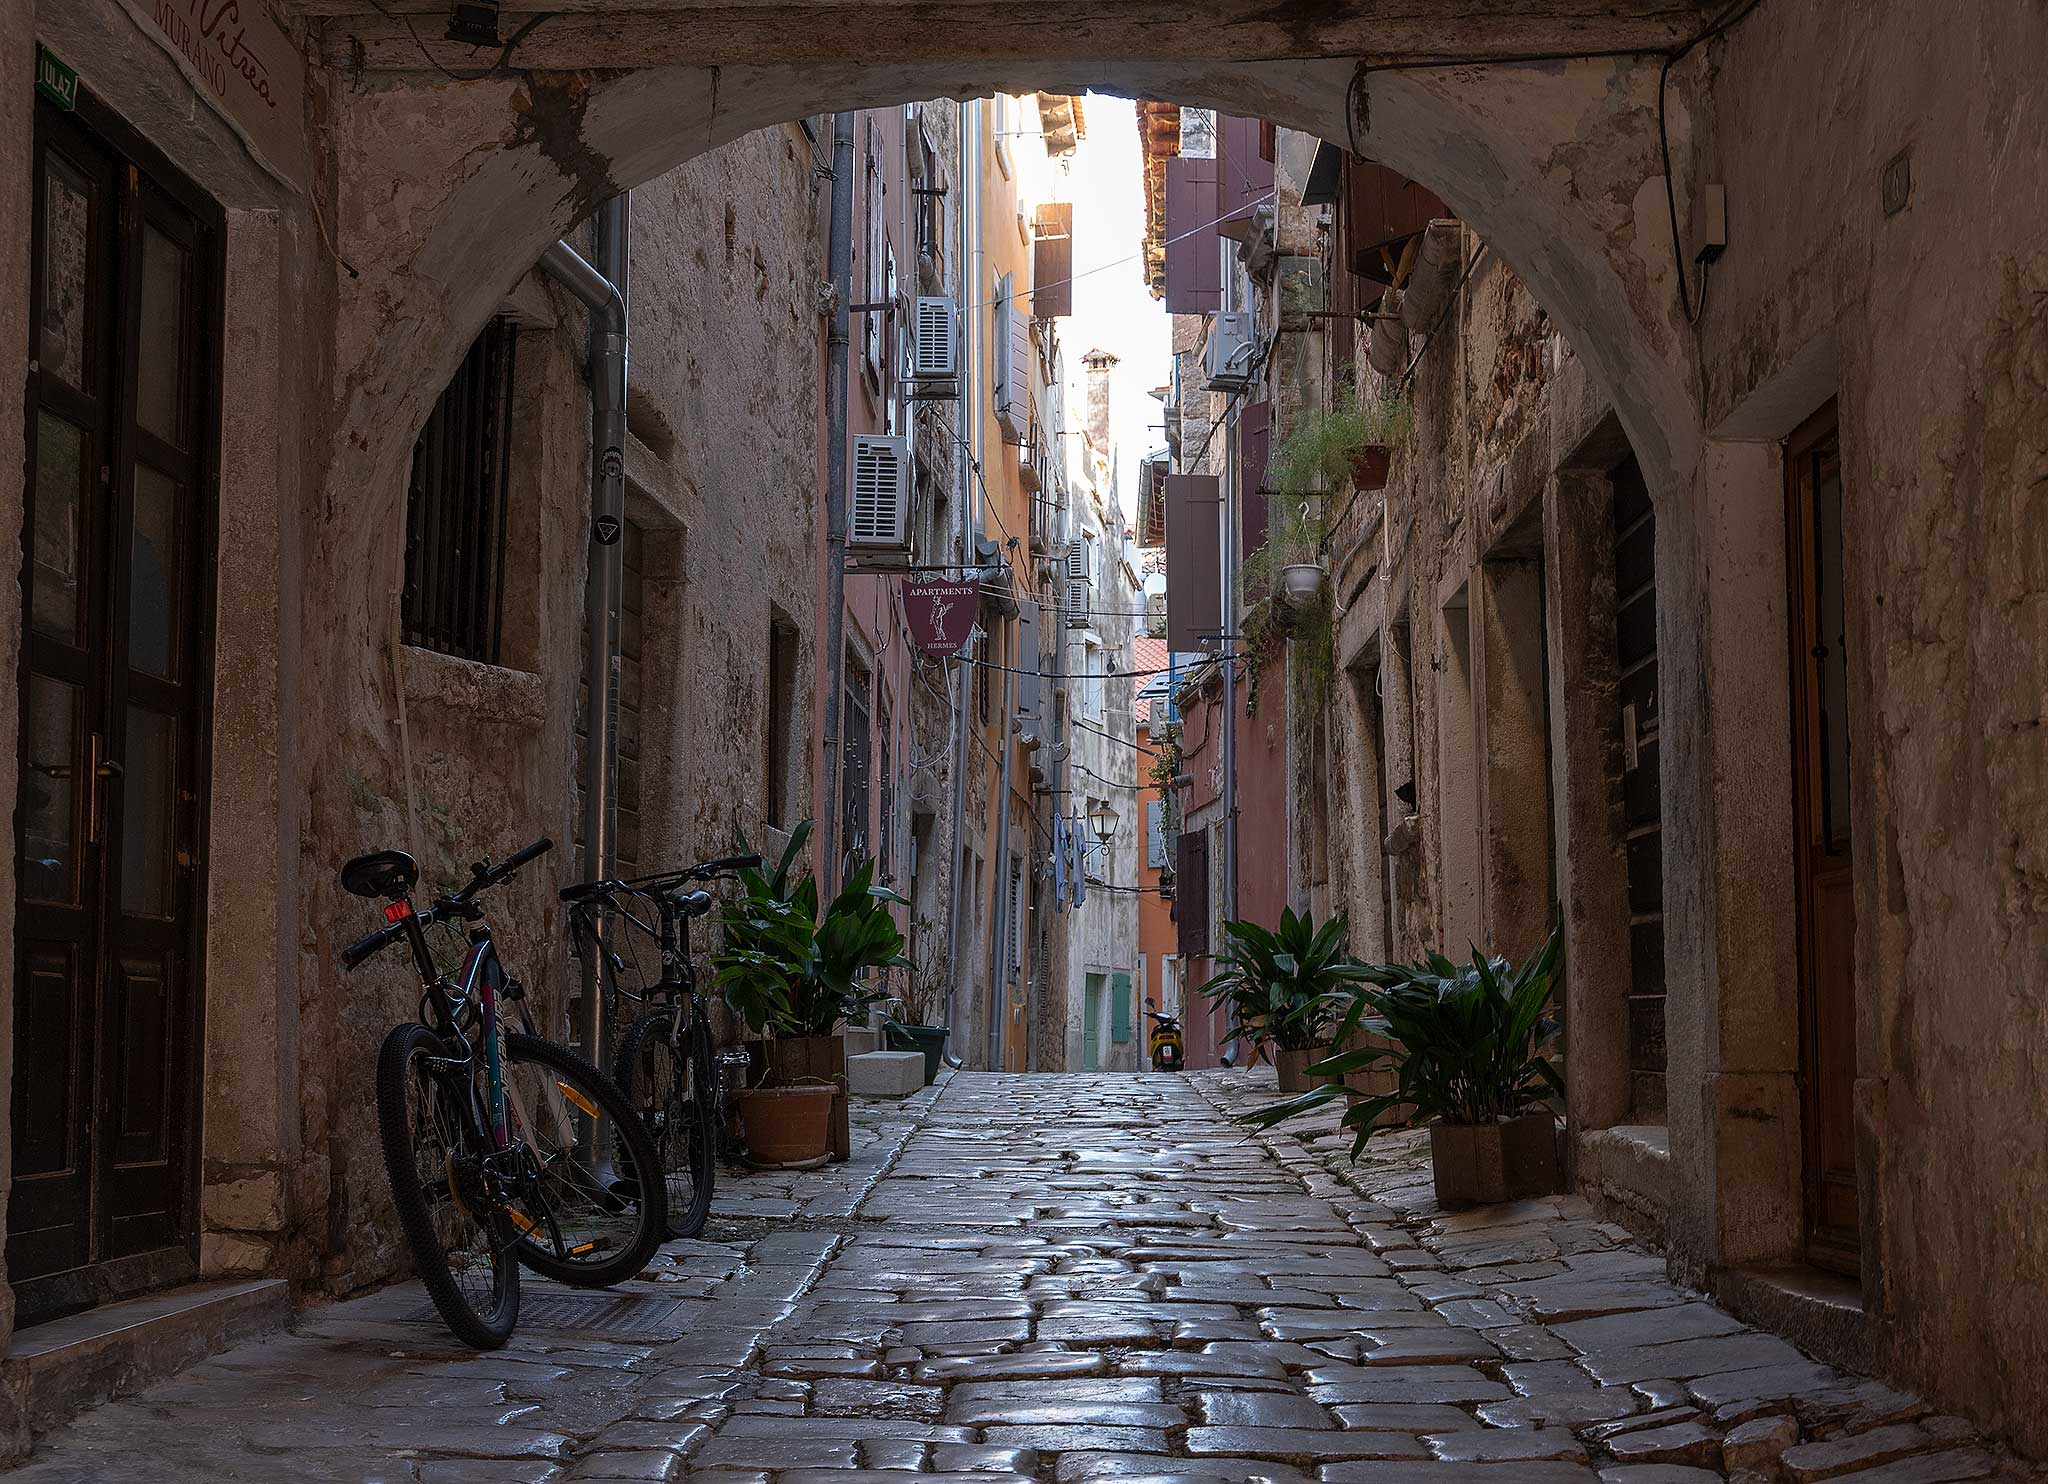 Rovinj Old Town - Narrow streets